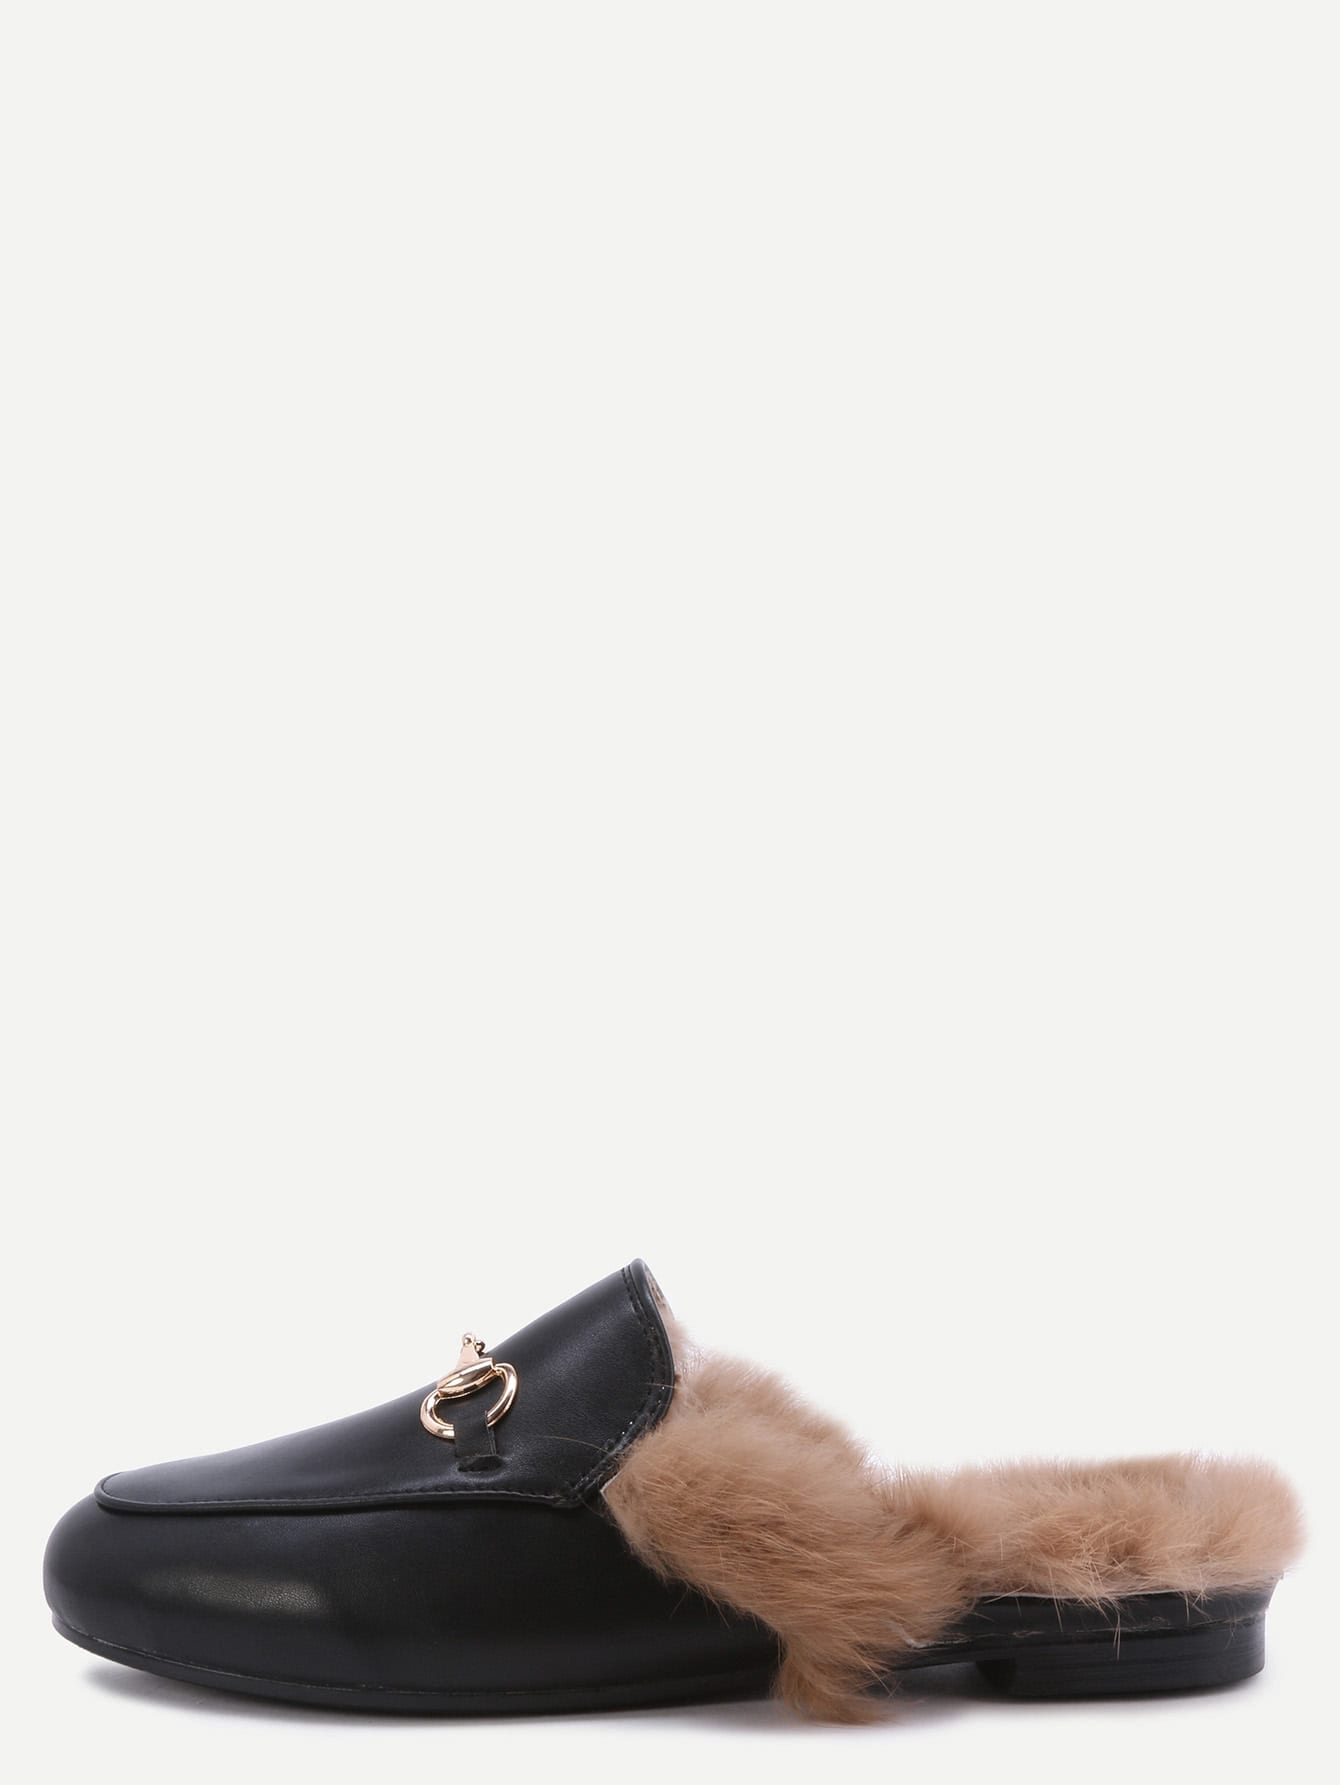 Image of Black Faux Leather Fur Lined Slippers